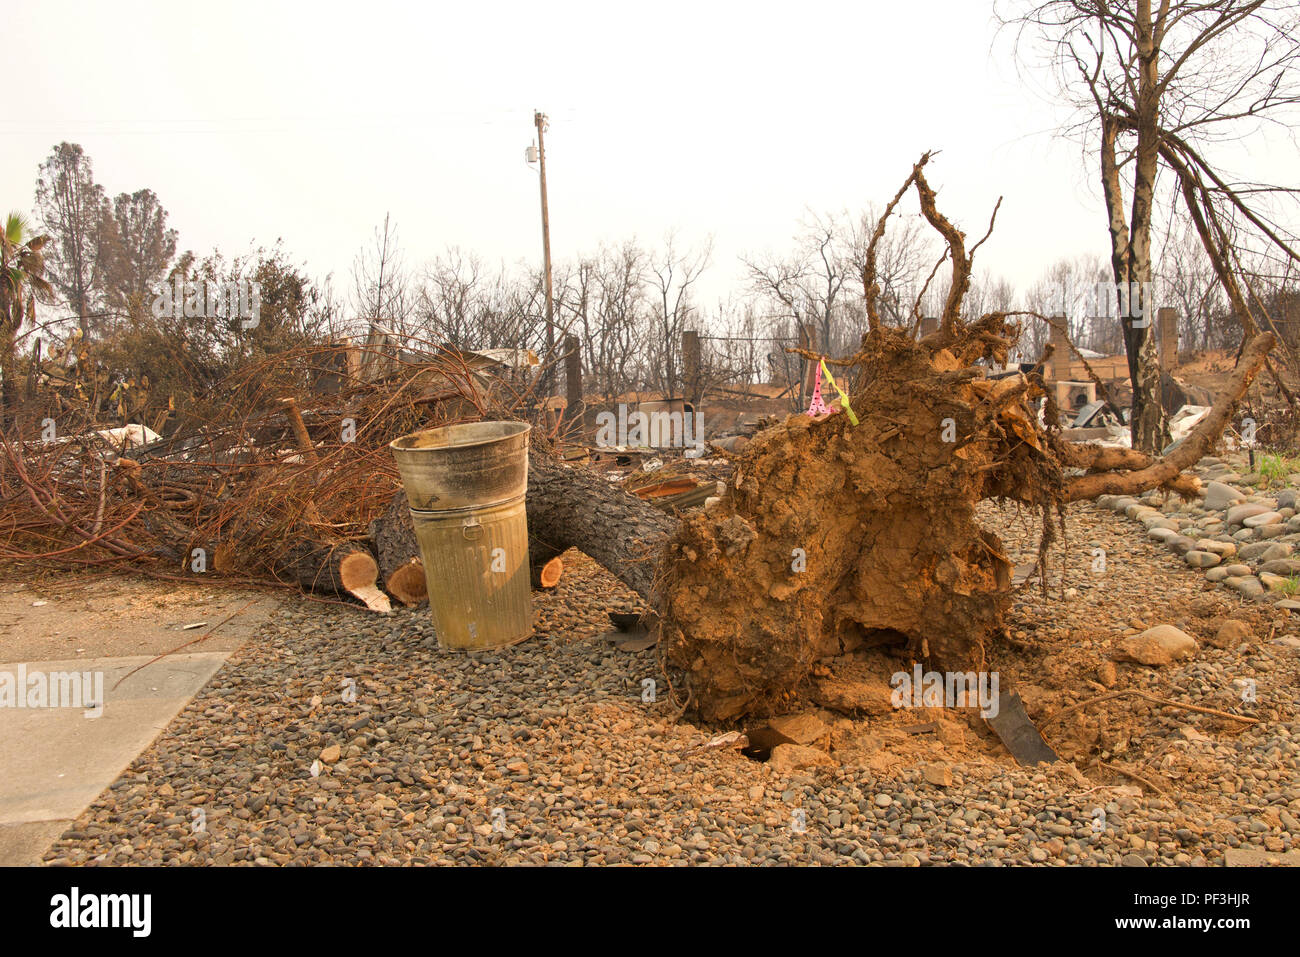 home burned to the ground with tree totally uprooted by tornado in the recent wild fire fire storm in Redding, California. Smoke and ash in the air as - Stock Image